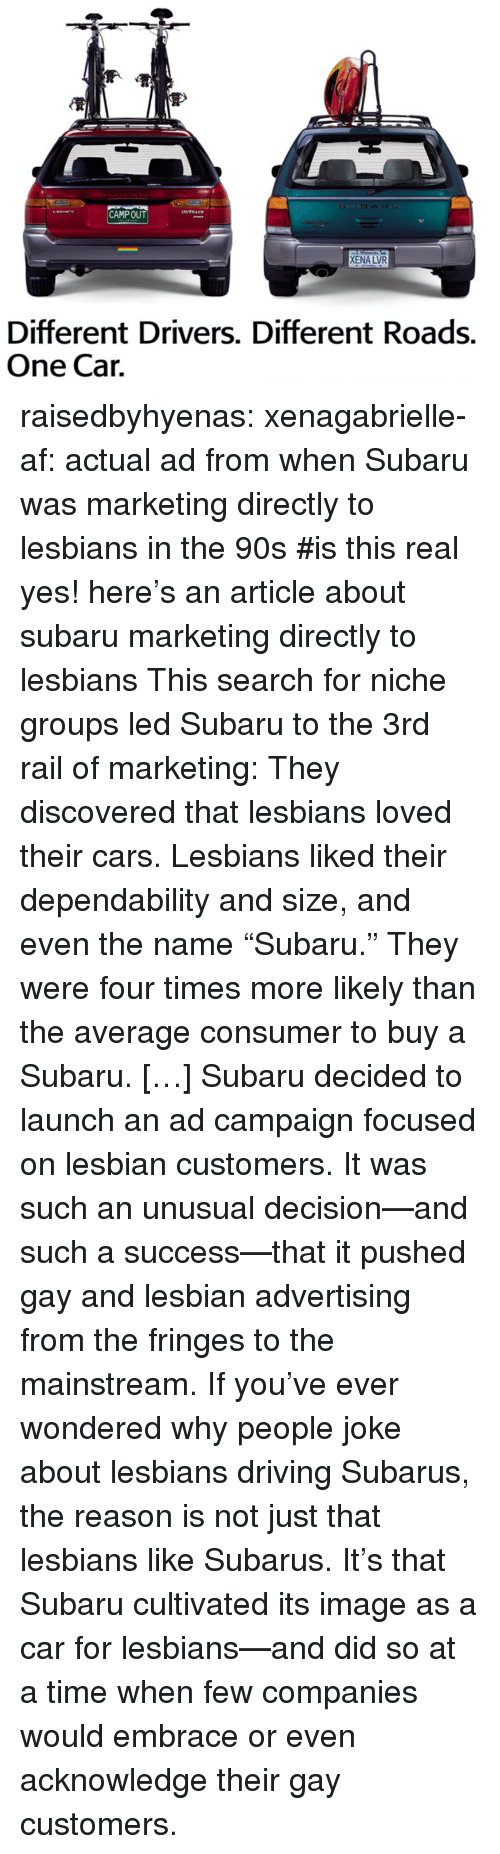 """Af, Cars, and Driving: CAMPOUT  XENA LVR  Different Drivers. Different Roads.  One Cair. raisedbyhyenas:  xenagabrielle-af: actual ad from when Subaru was marketing directly to lesbians in the 90s   #is this real     yes! here's an article about subaru marketing directly to lesbians    This search for niche groups led Subaru to the 3rd rail of marketing: They discovered that lesbians loved their cars. Lesbians liked their dependability and size, and even the name """"Subaru."""" They were four times more likely than the average consumer to buy a Subaru. […]Subaru decided to launch an ad campaign focused on lesbian customers. It was such an unusual decision—and such a success—that it pushed gay and lesbian advertising from the fringes to the mainstream. If you've ever wondered why people joke about lesbians driving Subarus, the reason is not just that lesbians like Subarus. It's that Subaru cultivated its image as a car for lesbians—and did so at a time when few companies would embrace or even acknowledge their gay customers."""